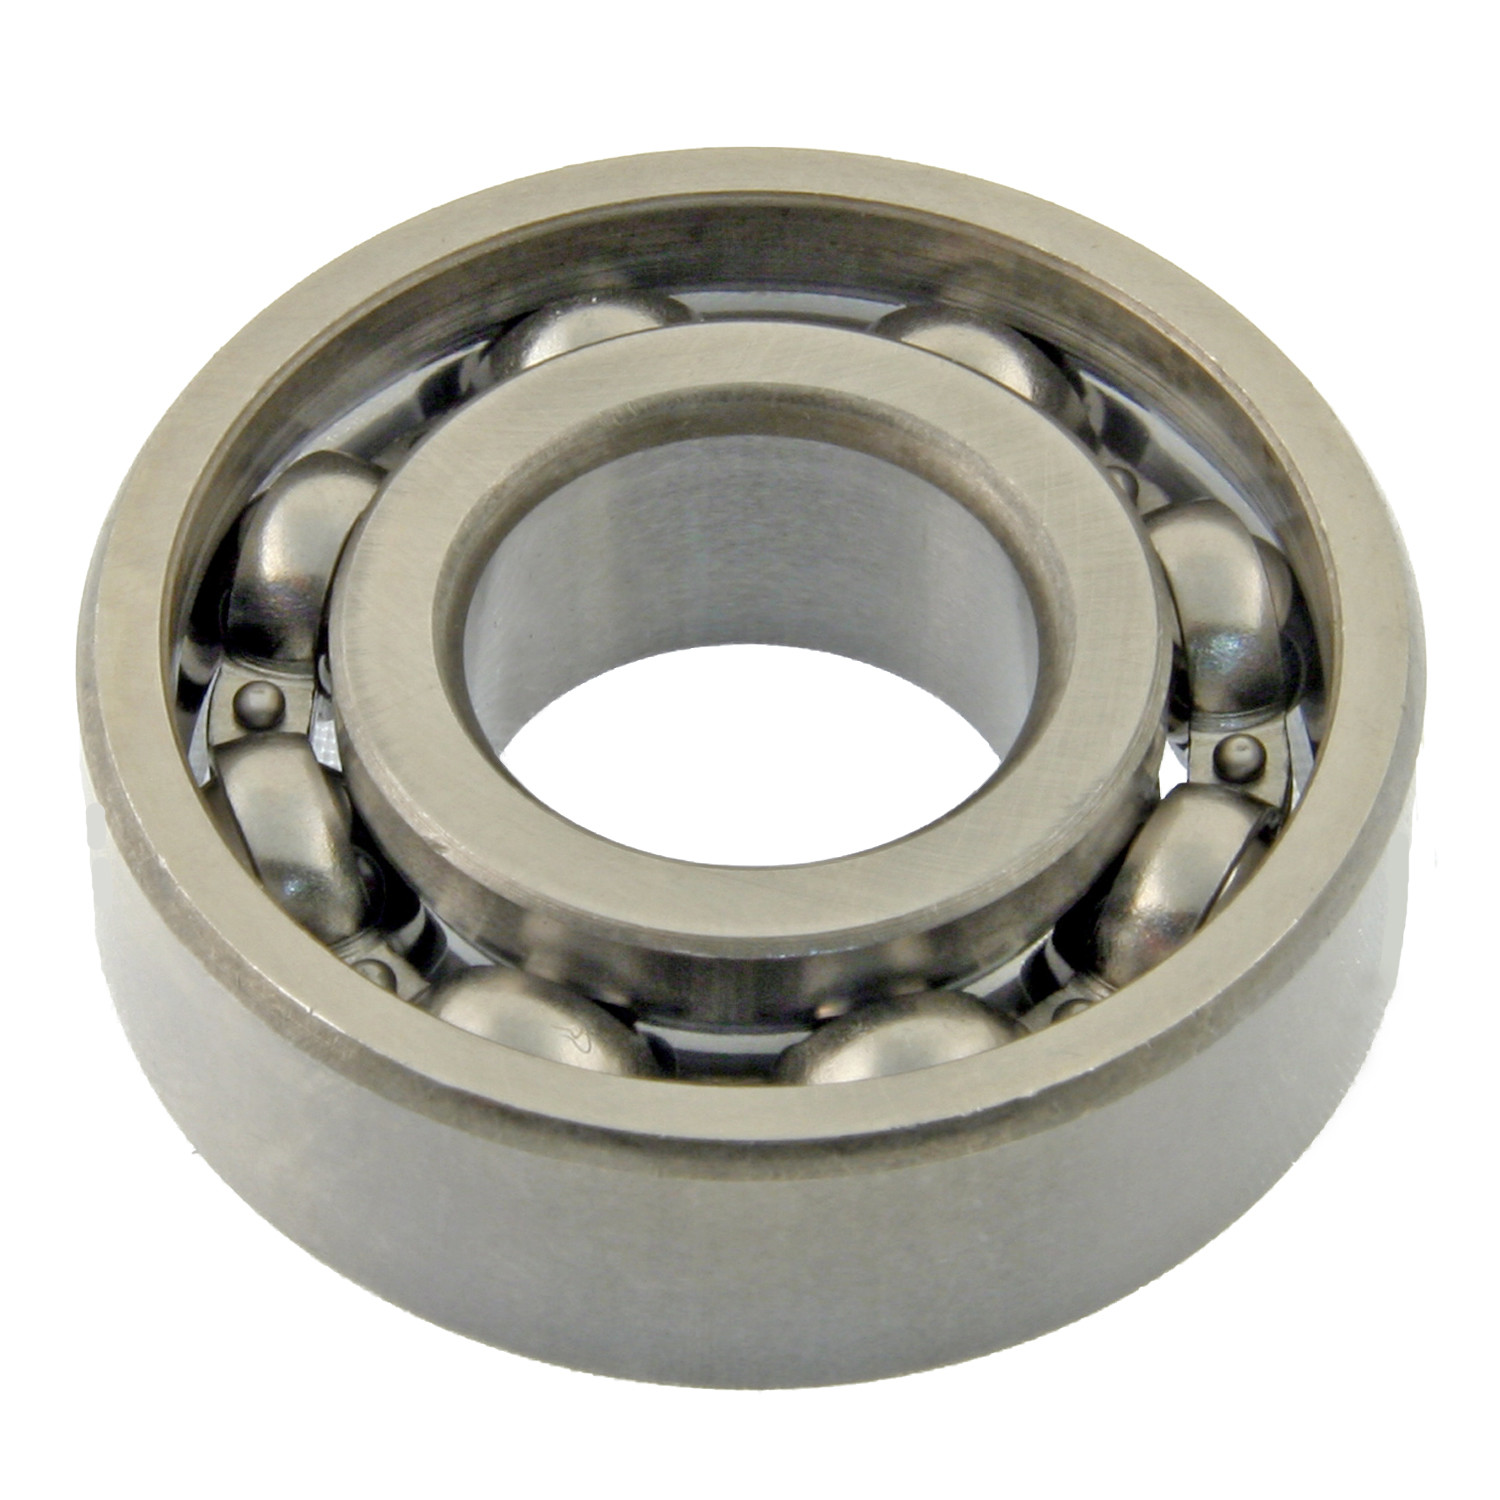 PRECISION AUTOMOTIVE INDUSTRIES - Power Steering Pump Shaft Bearing - PAU 203